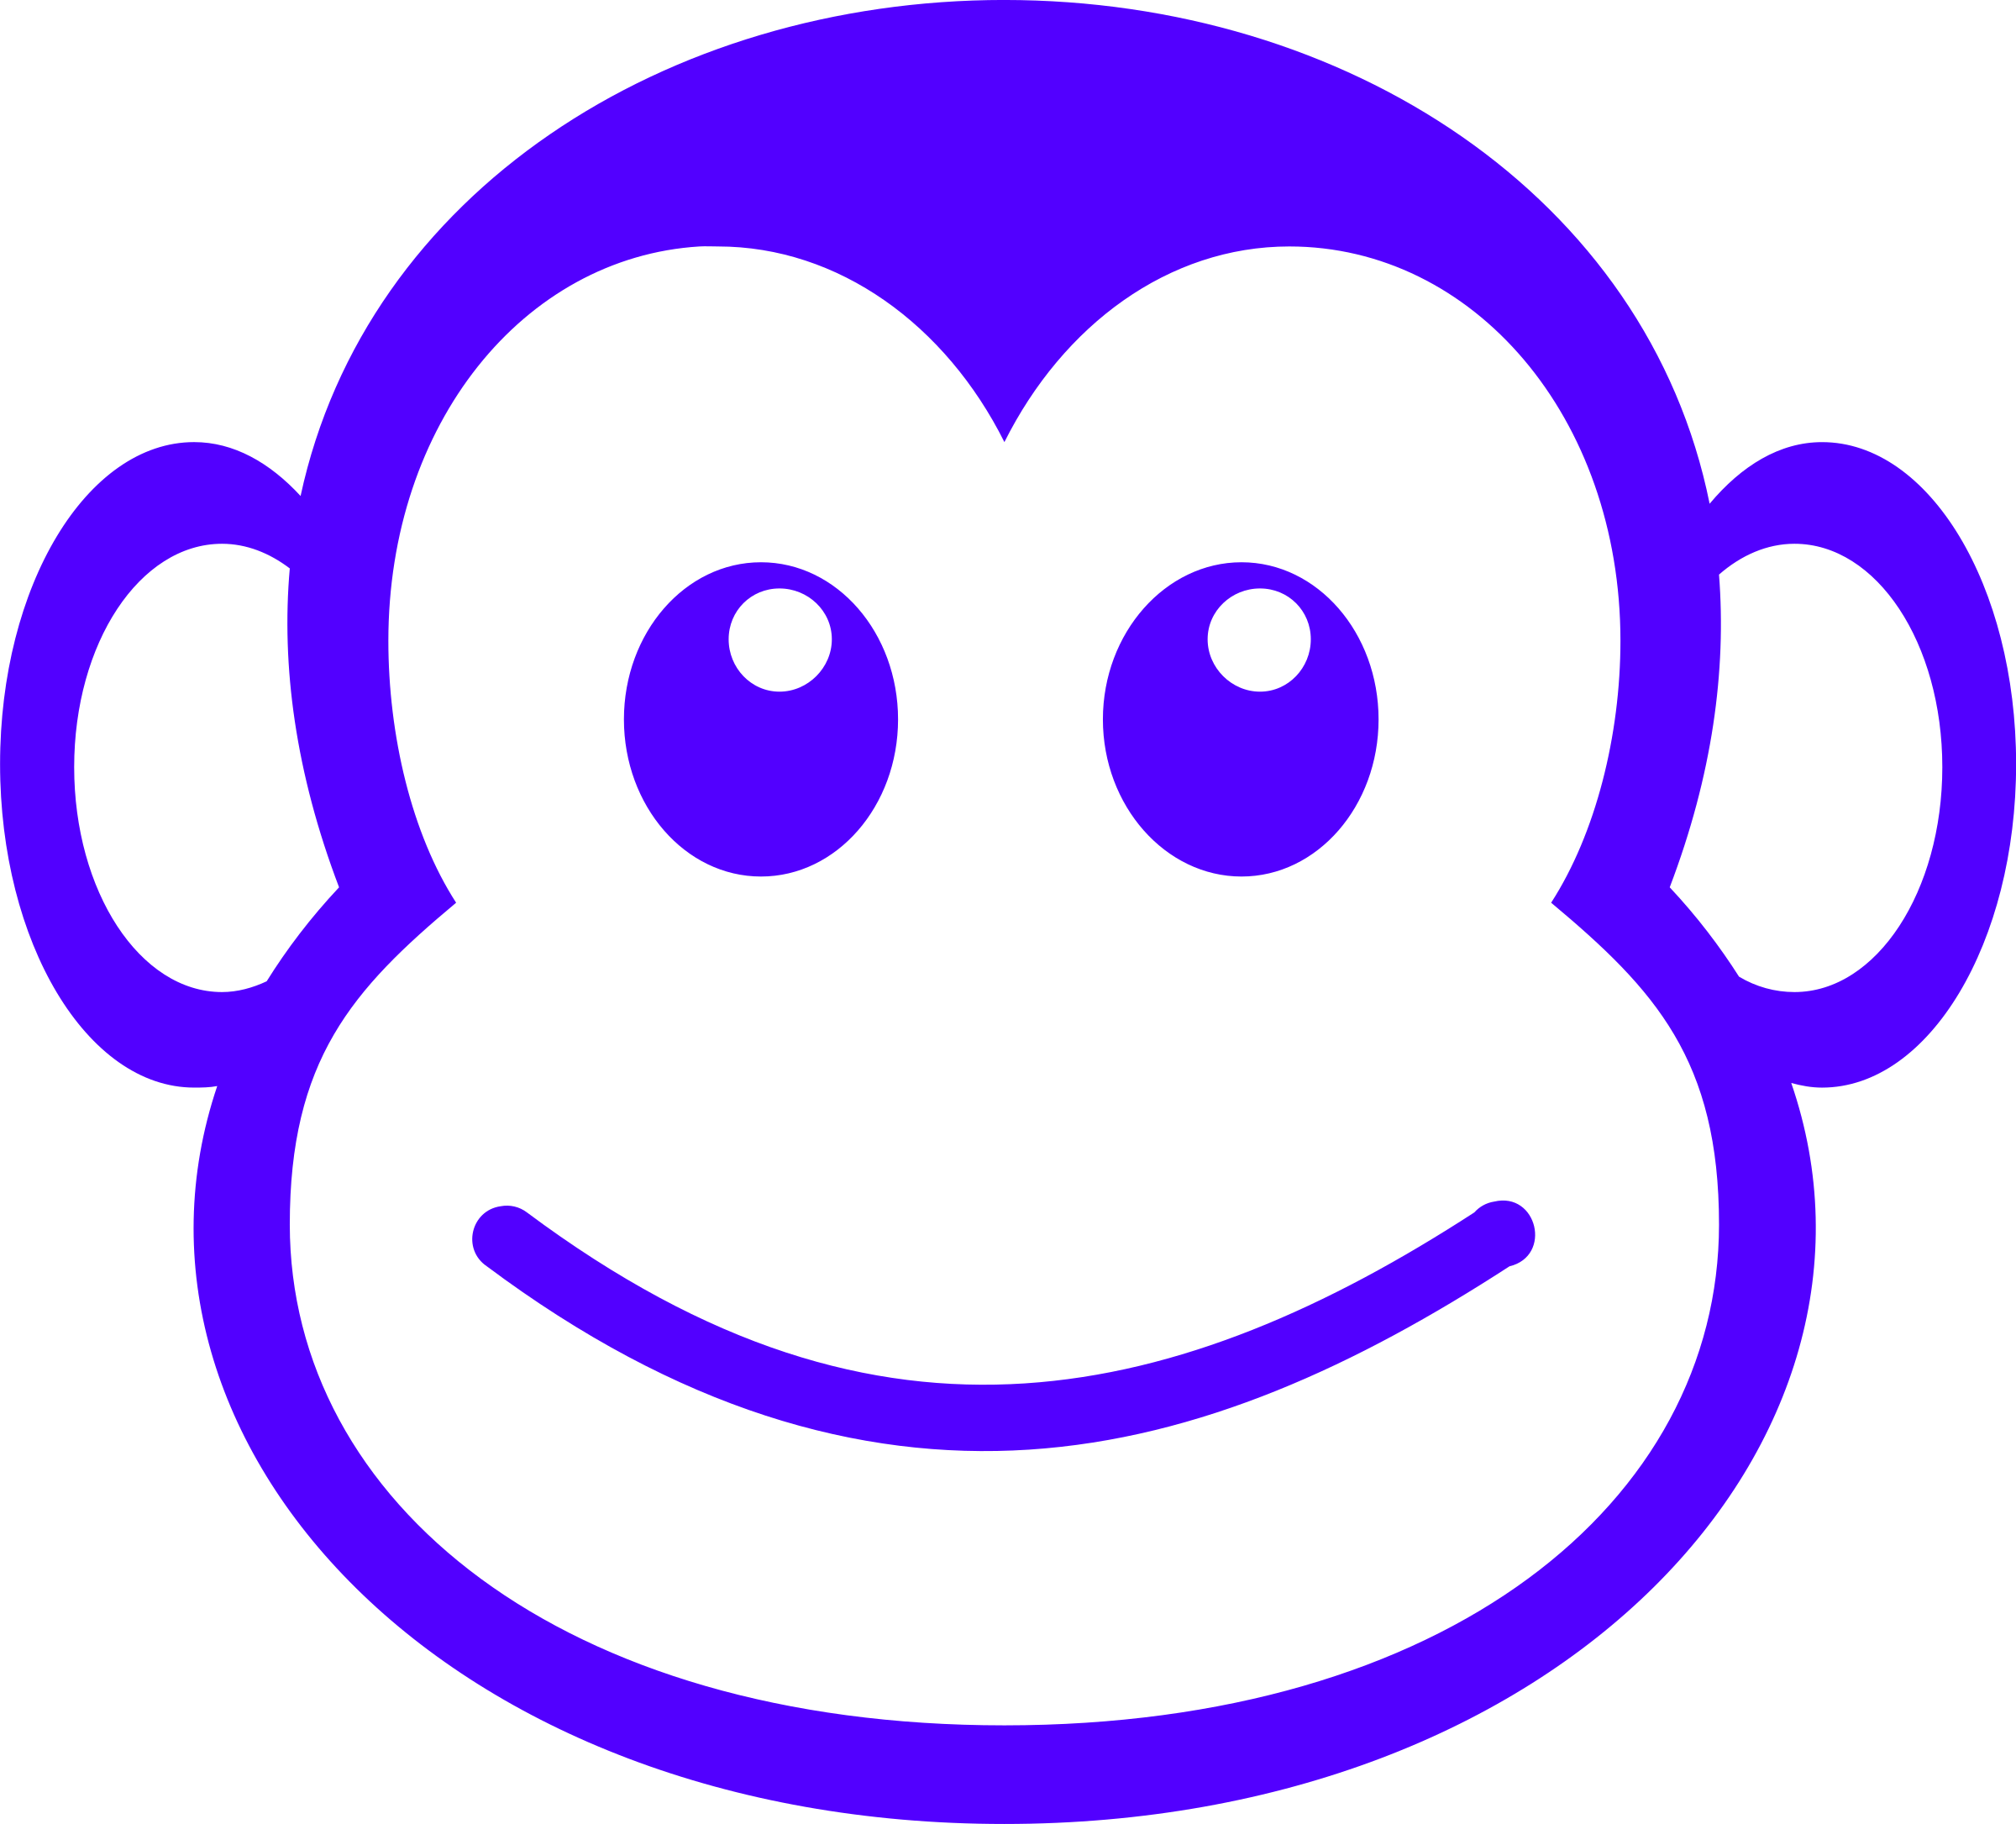 Monkey clipart cheeky monkey. Funny face simple path